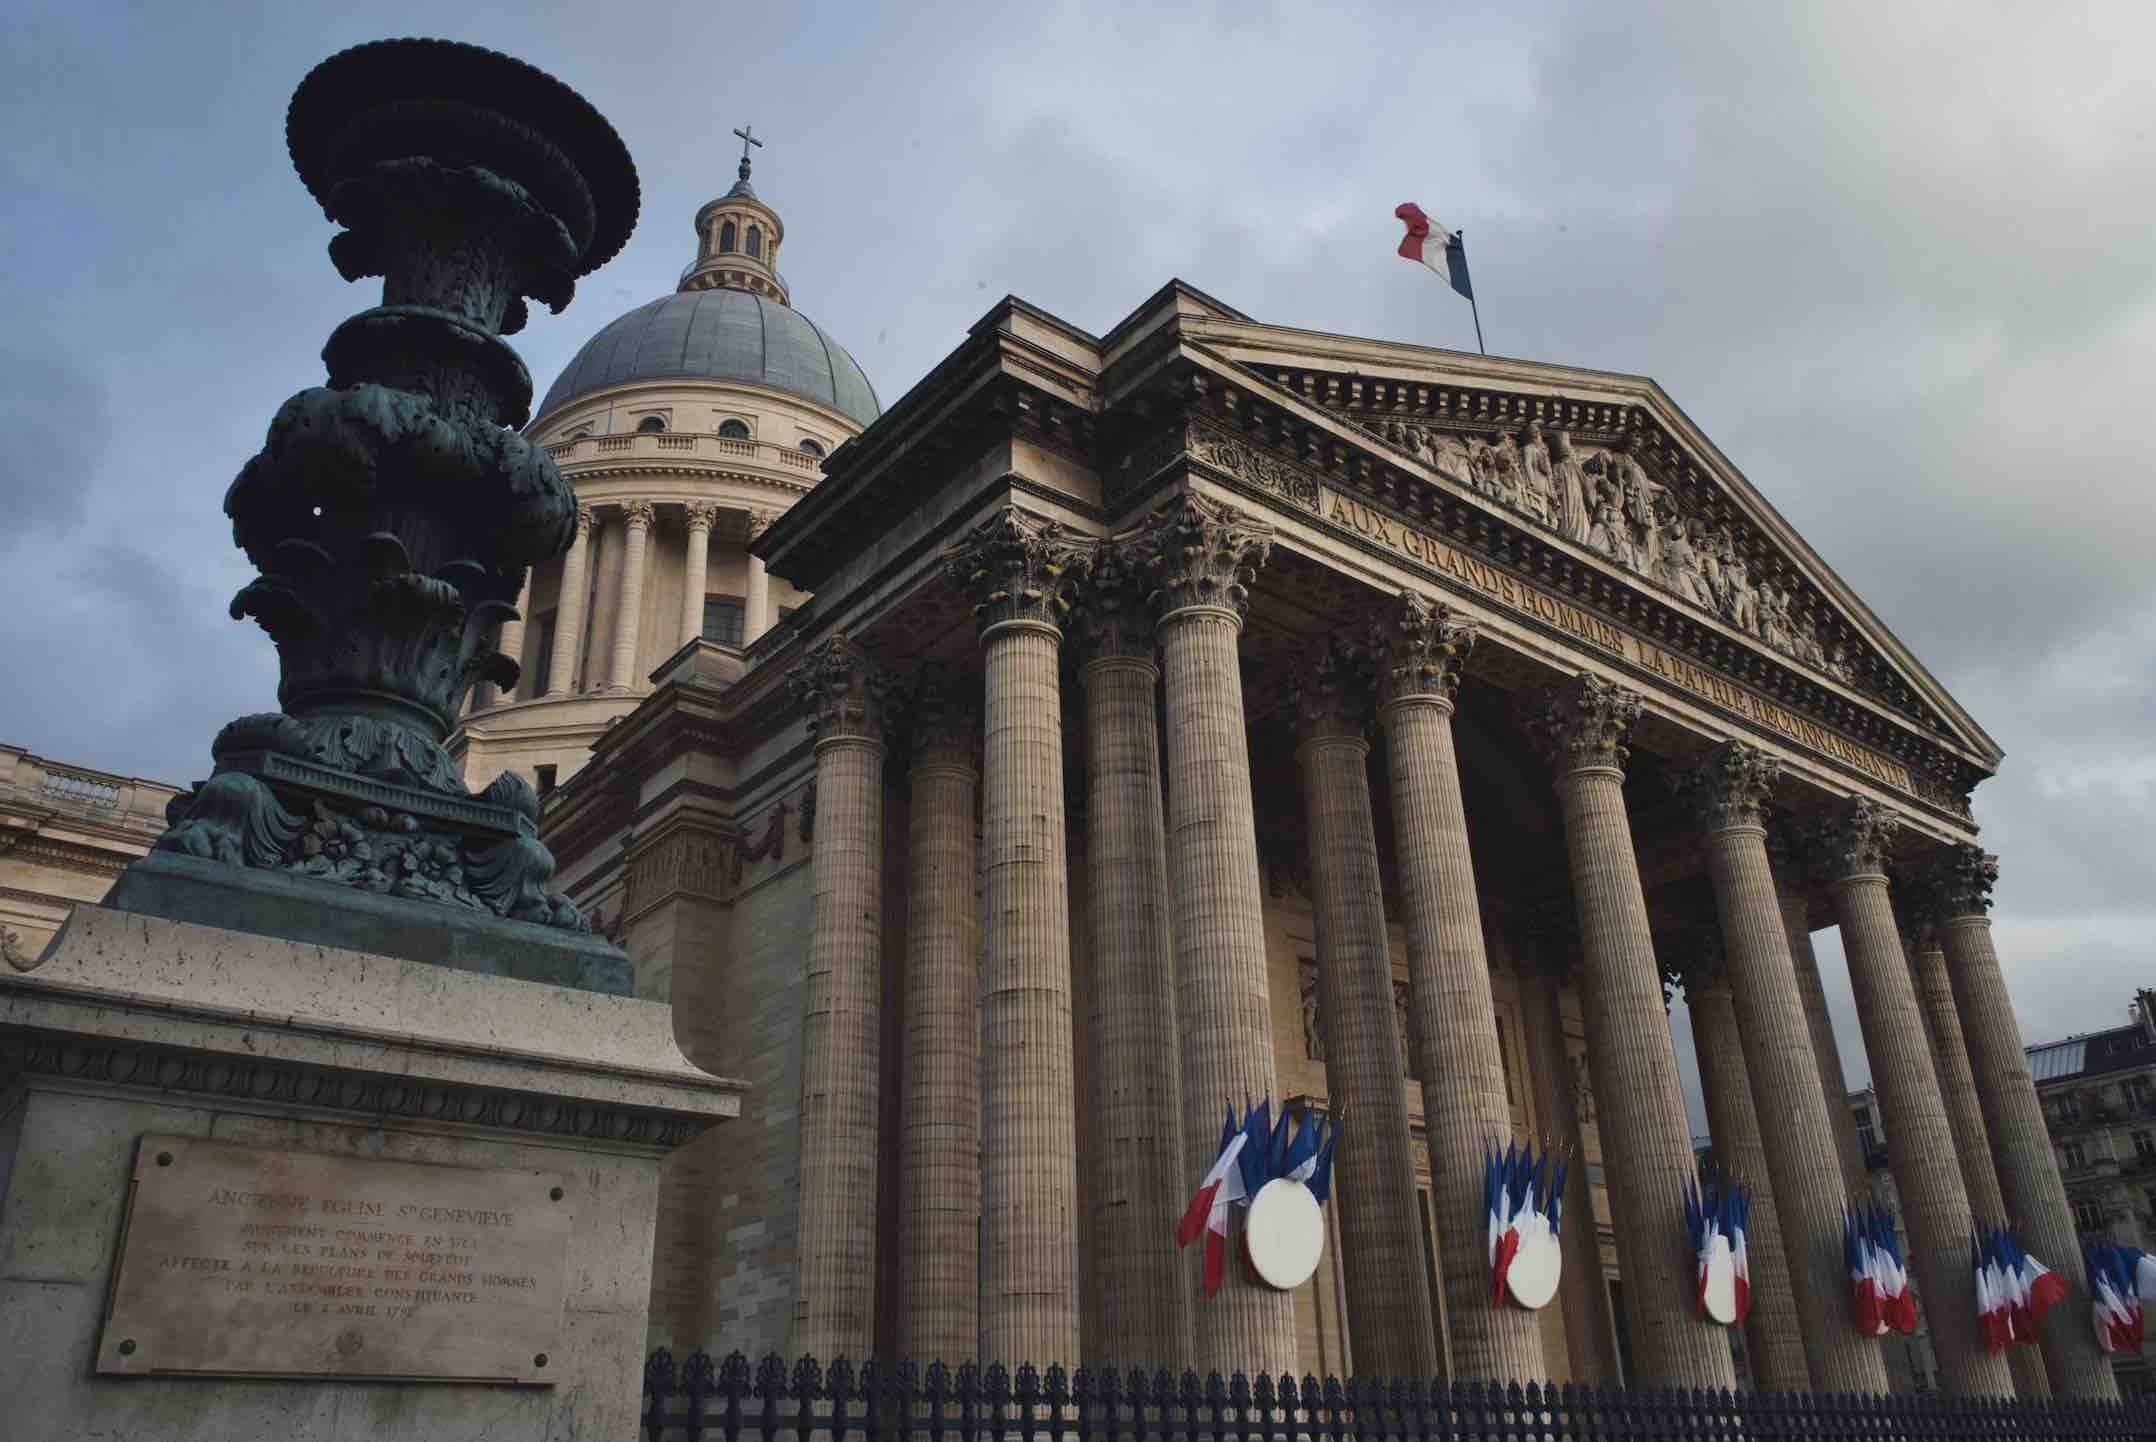 Top things to do in Paris for book lovers include visiting the famous Pantheon, shown here with French flags